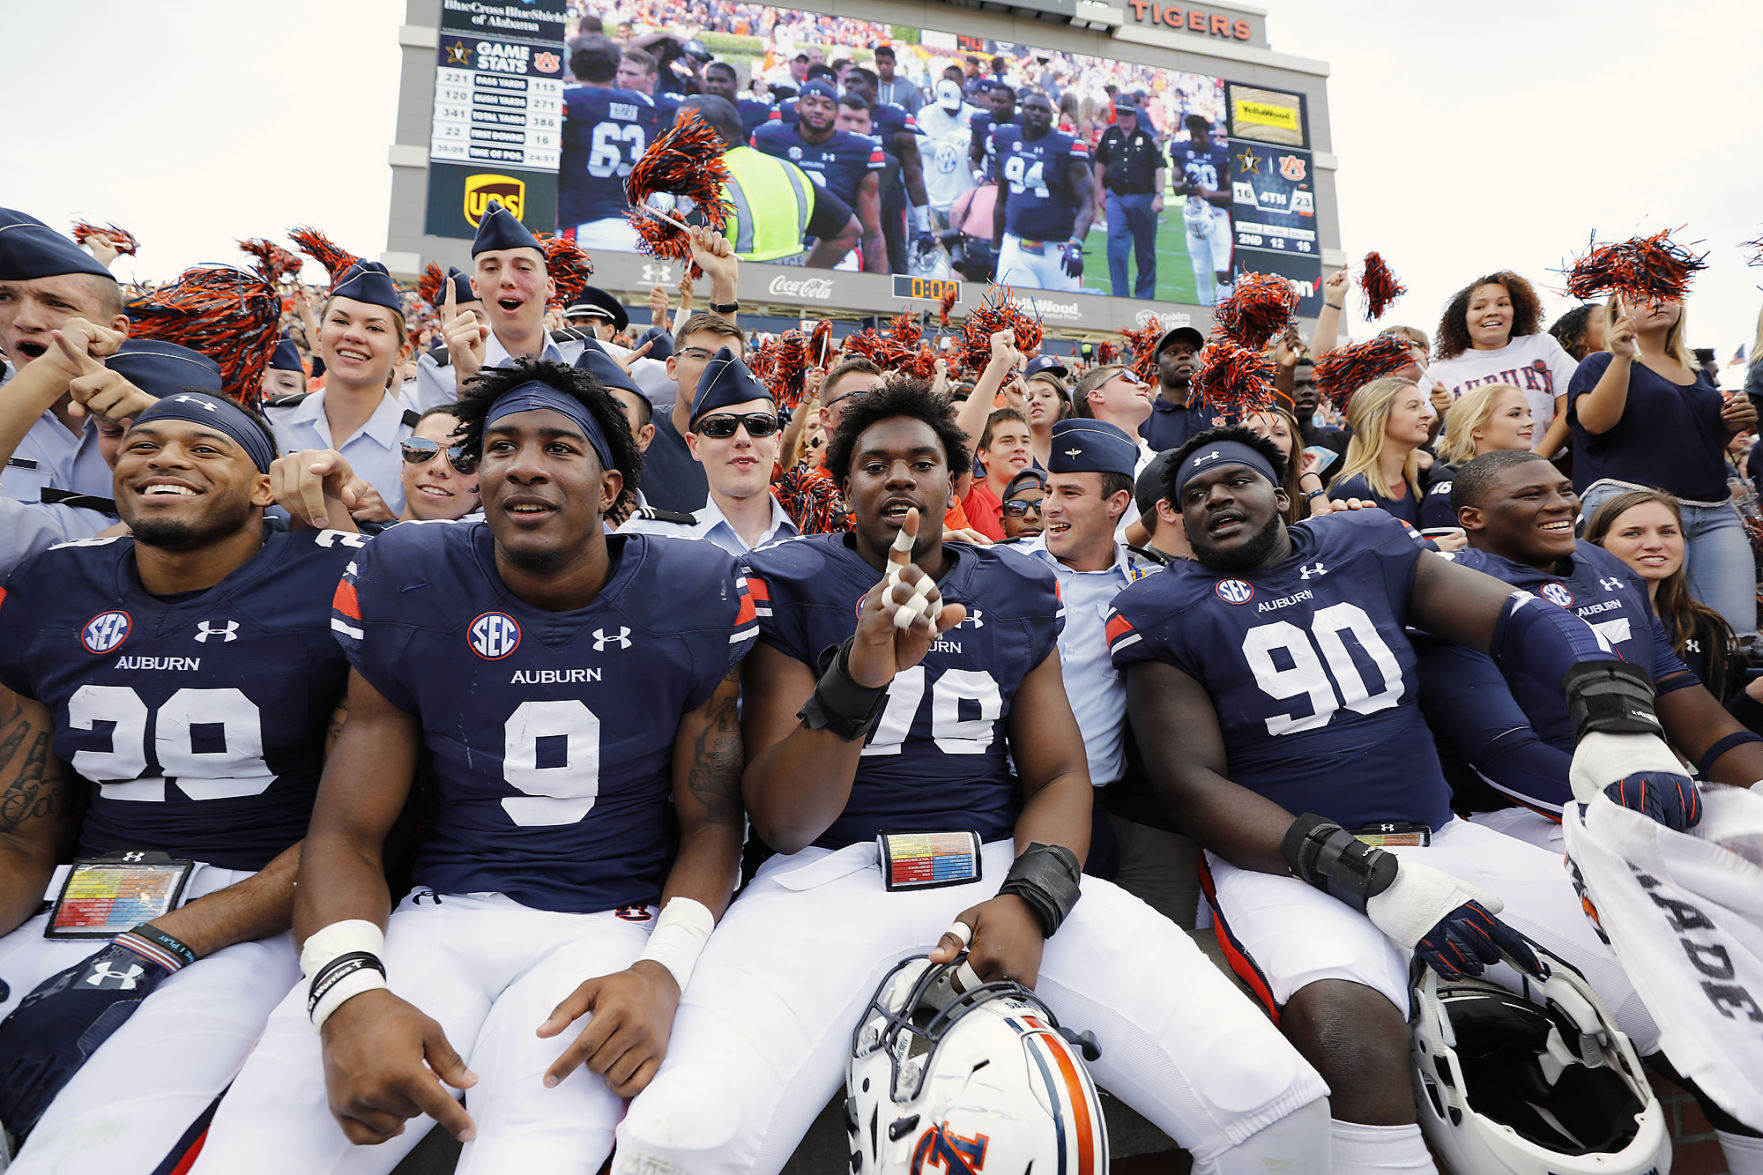 Auburn players miss season opener against Georgia Southern